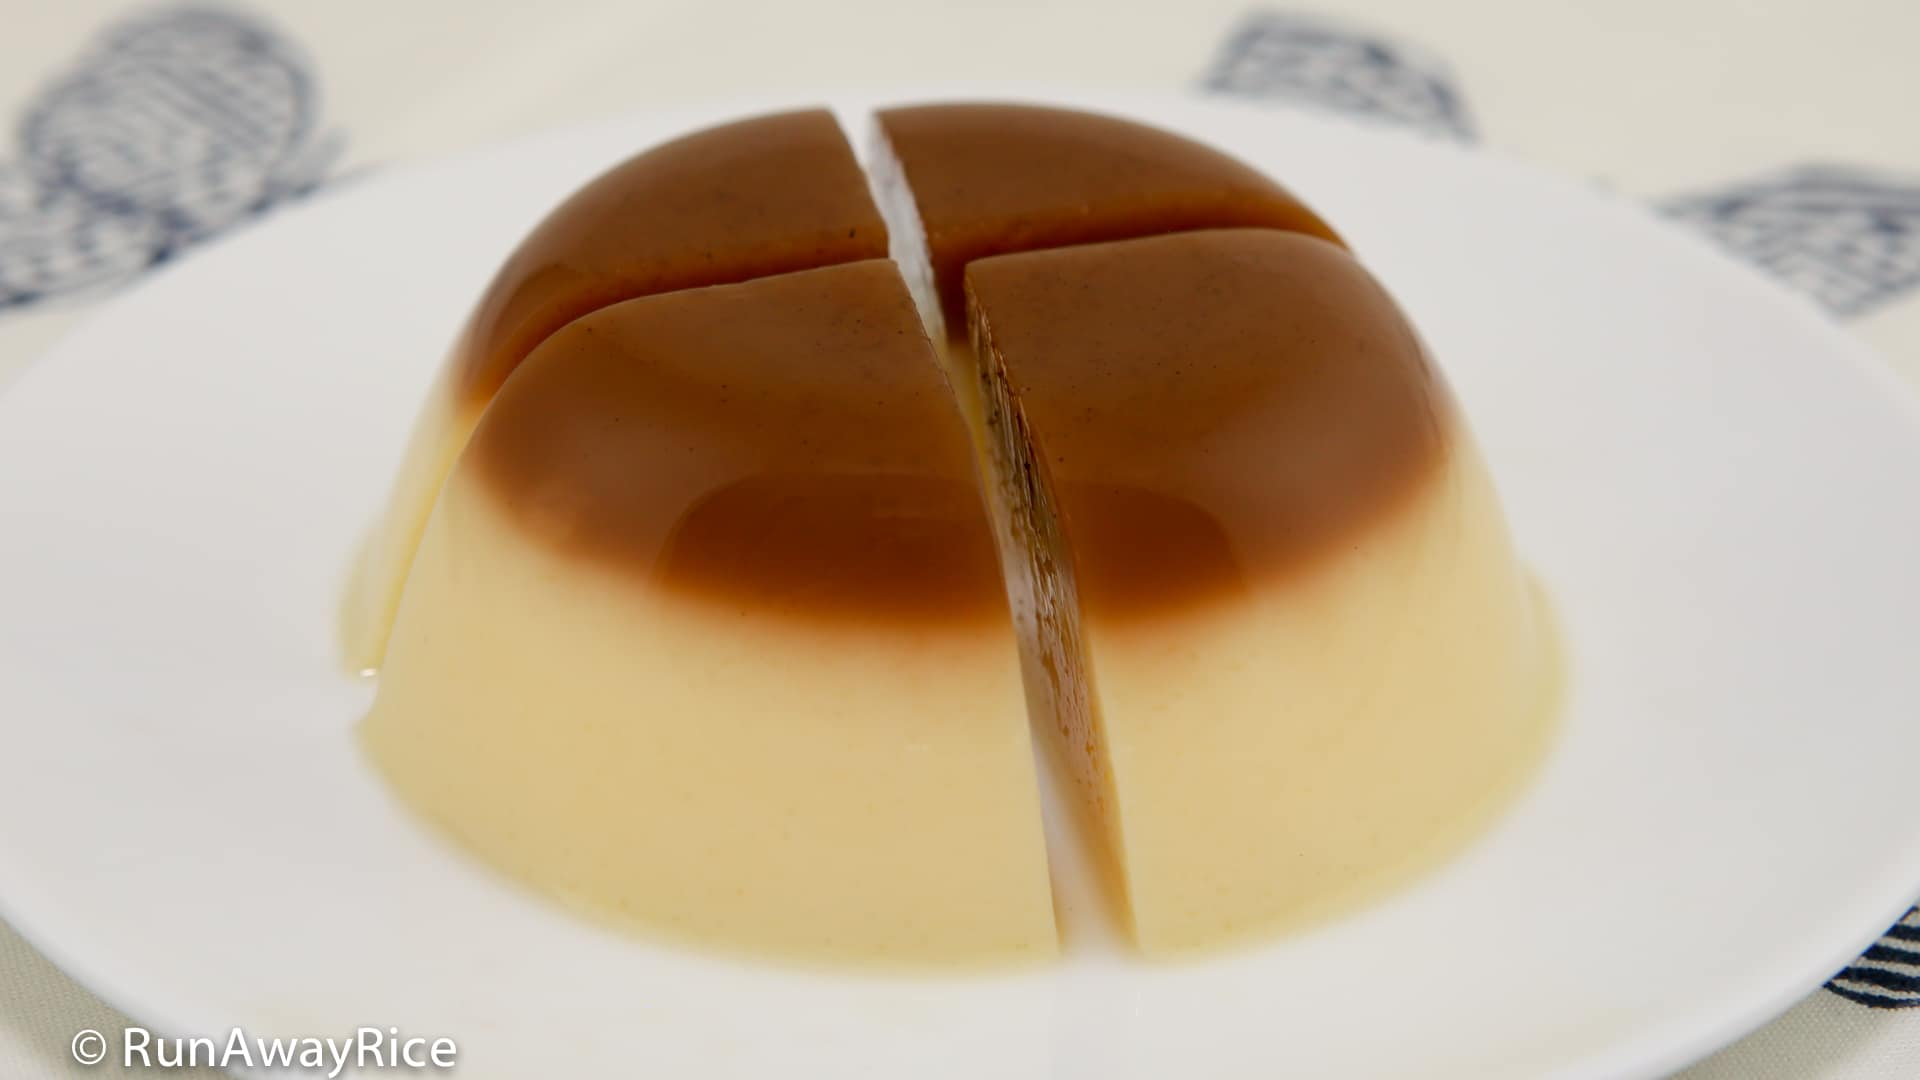 Coffee Flan Agar Jelly (Thach Flan Ca Phe) - a tasty combination of flan and jelly, Delish! | recipe from runawayrice.com